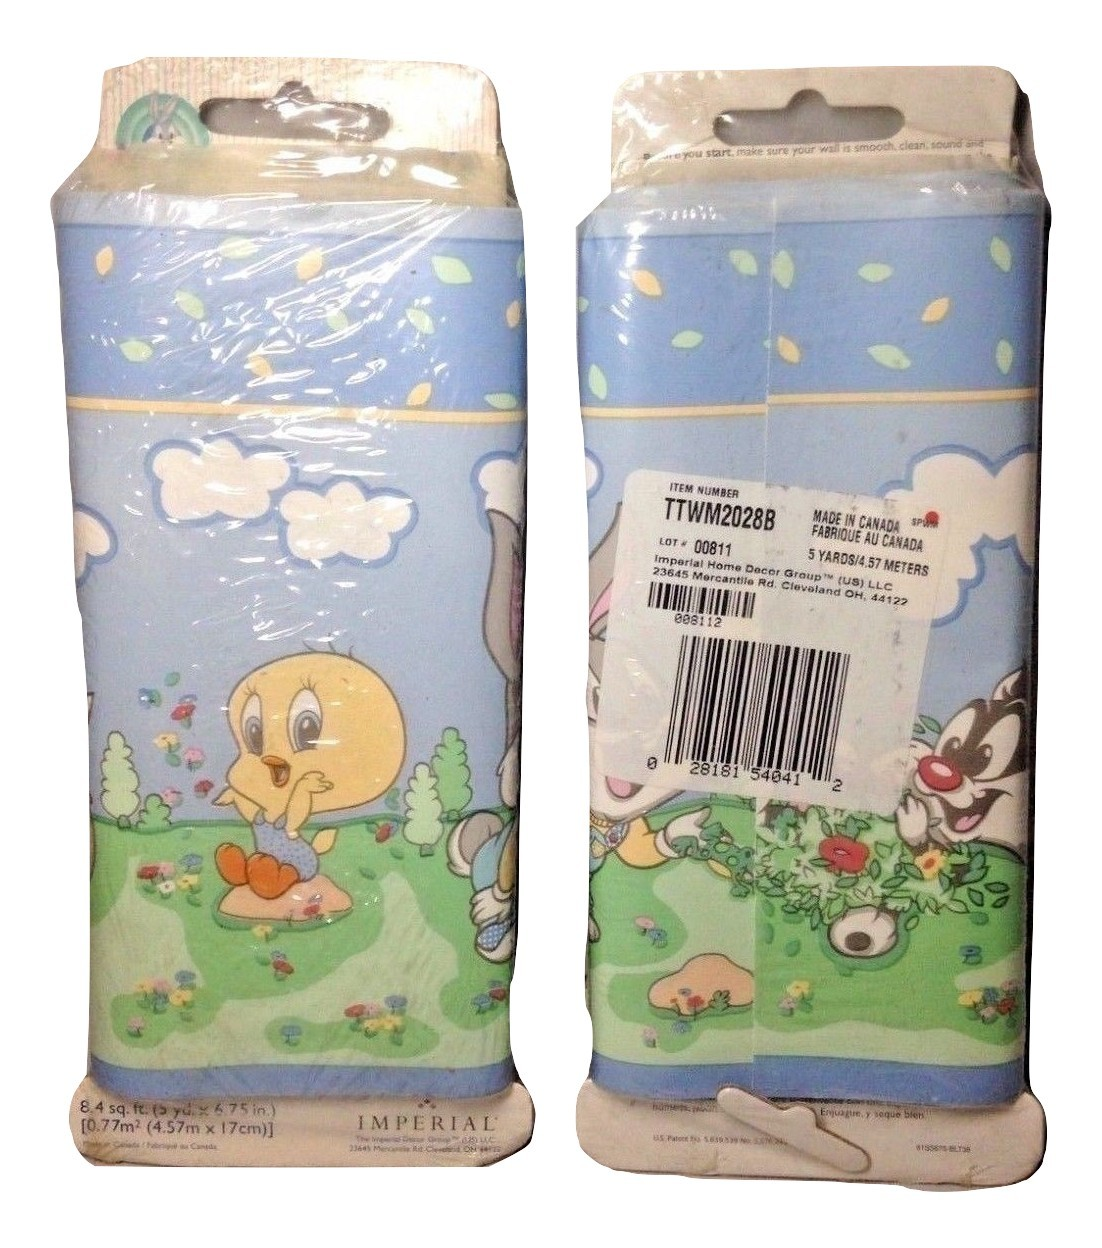 X2 Packs of VTG Looney Tunes Babies Bugs Bunny Tweety Sylvester Wallpaper Border